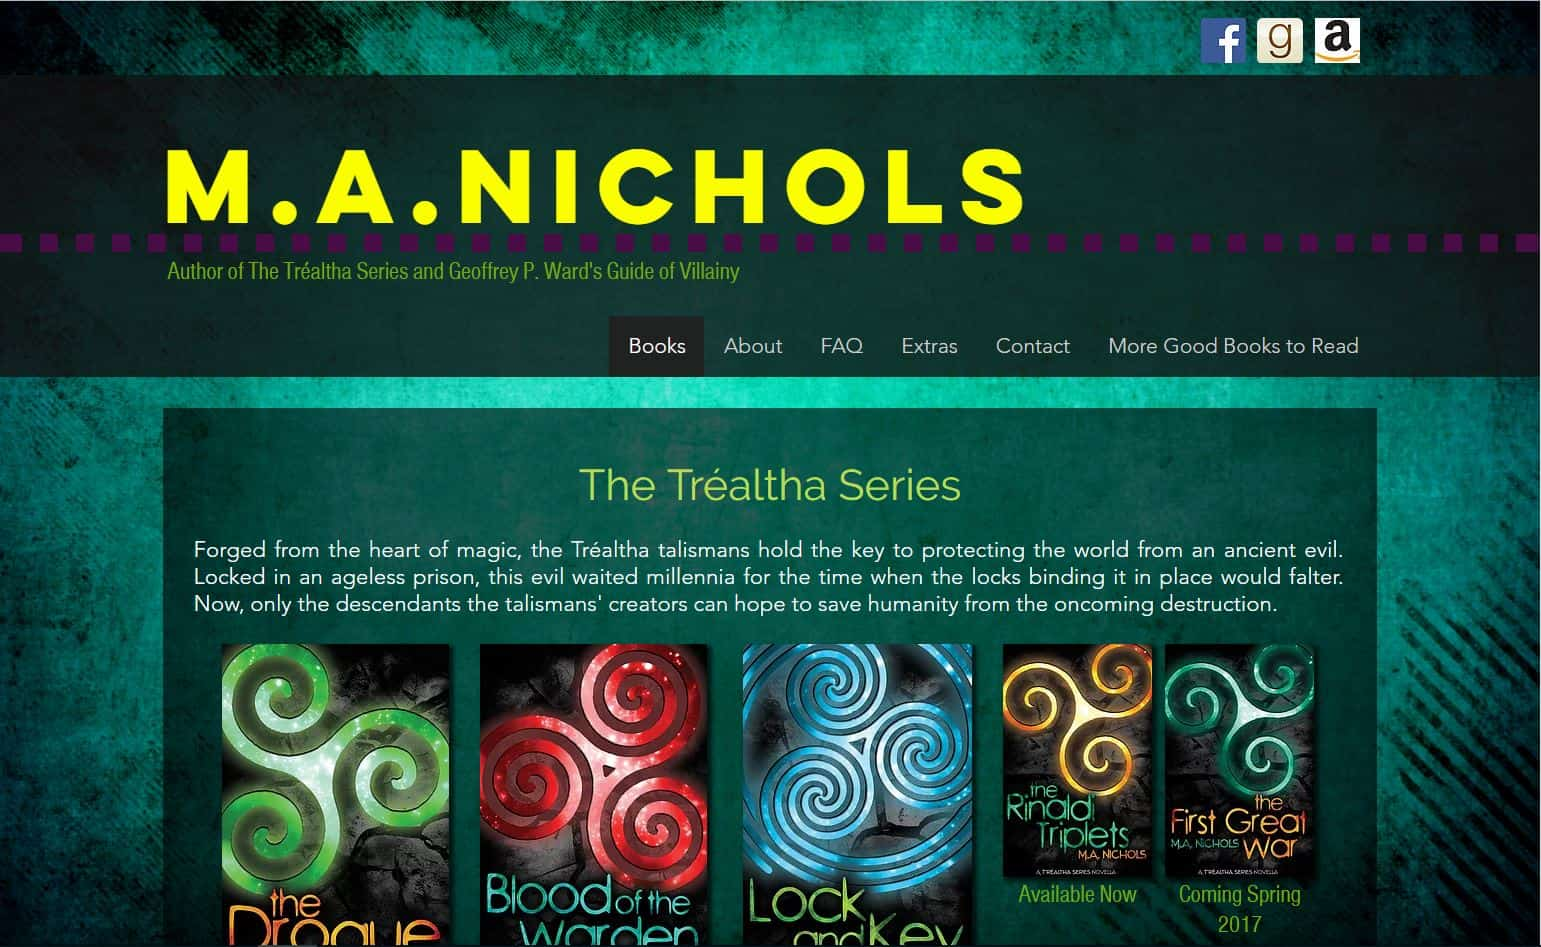 MA Nichols - Author website